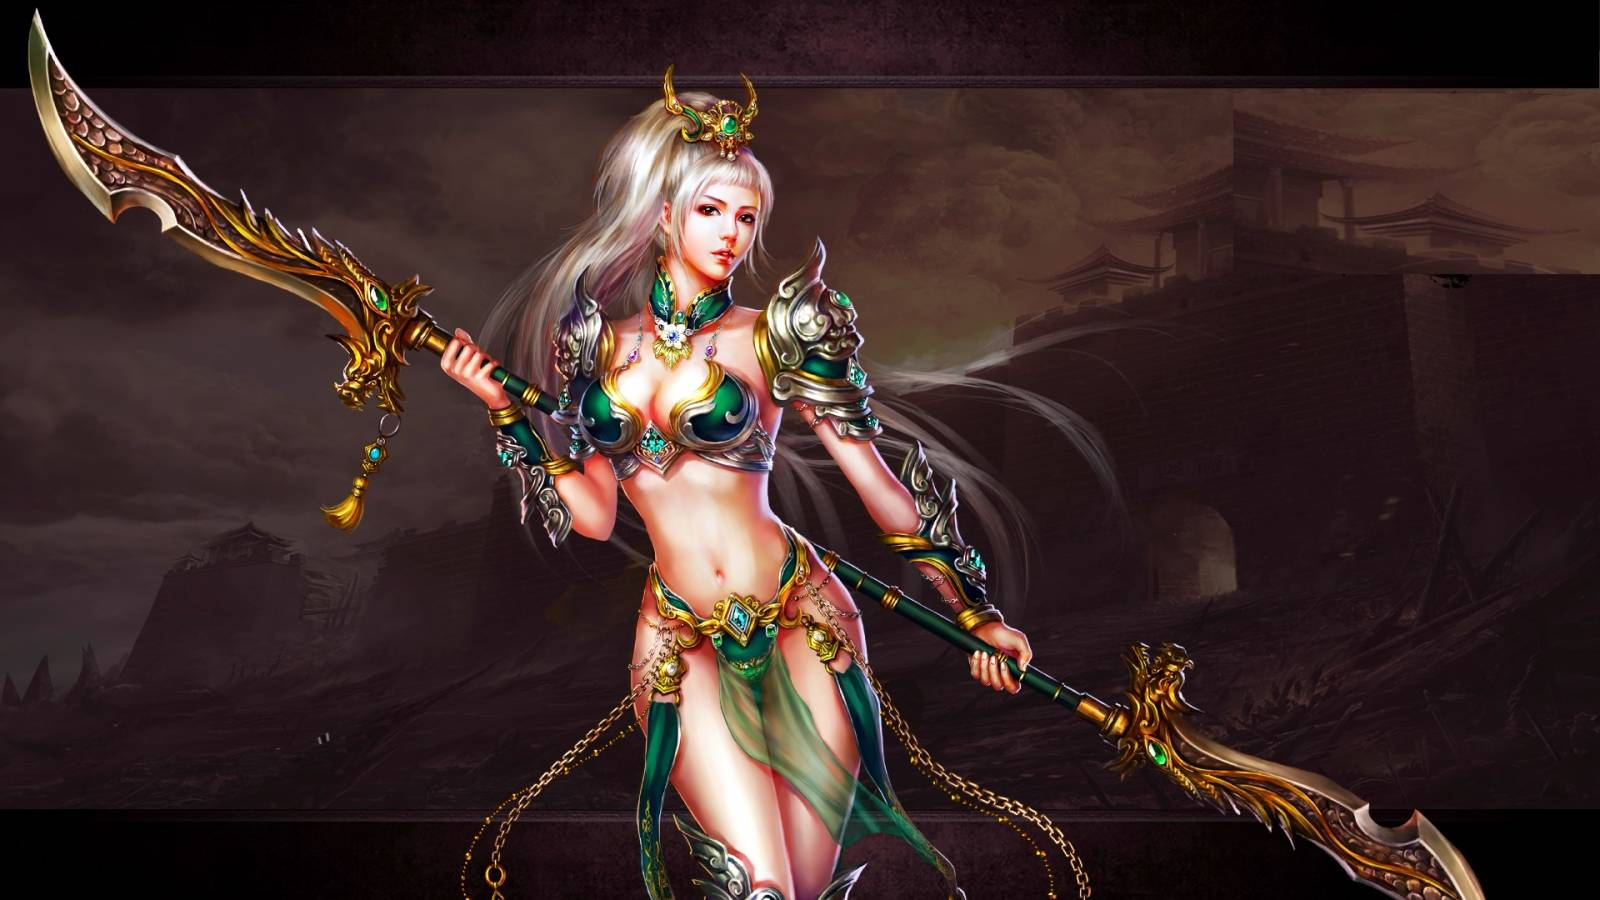 Wallpaper games warrior fantasy nude exposed galleries